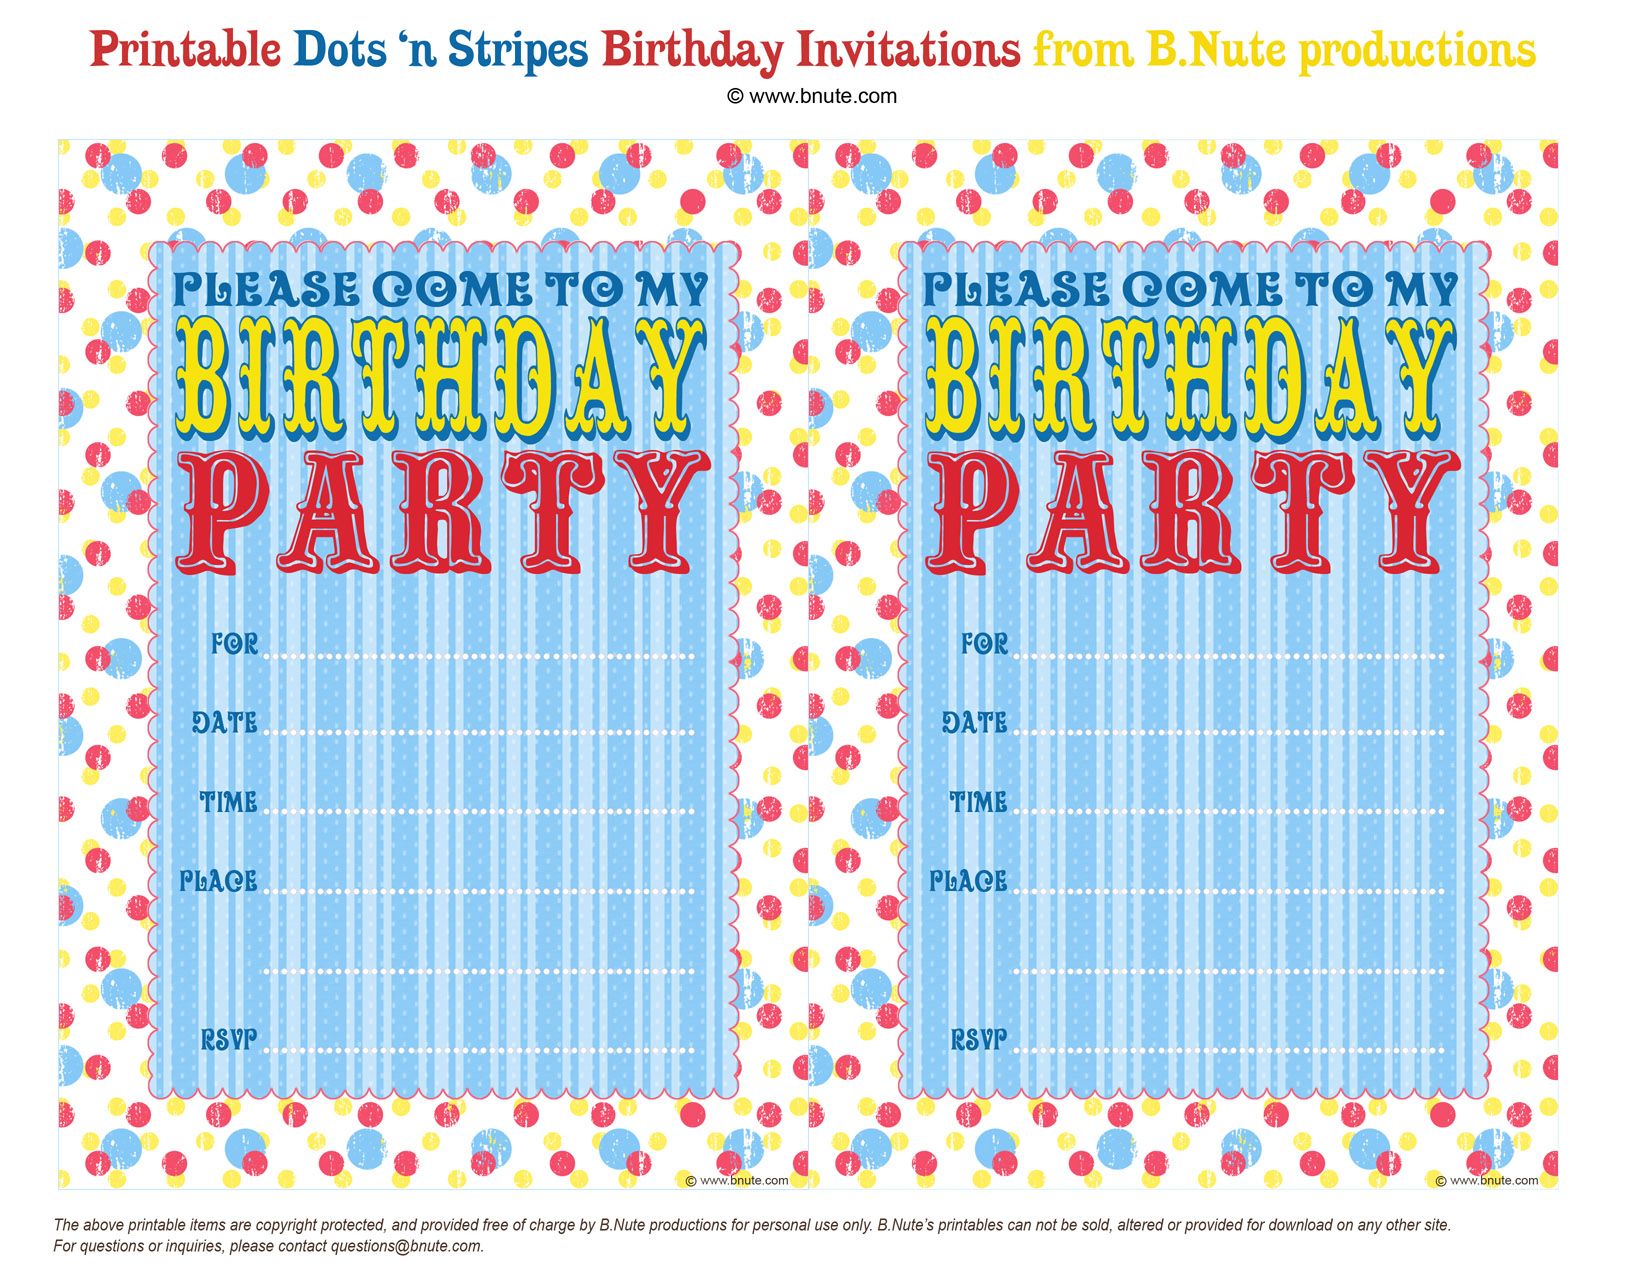 Free Printable Dots N Stripes Birthday Party Invitations By BNute Productions